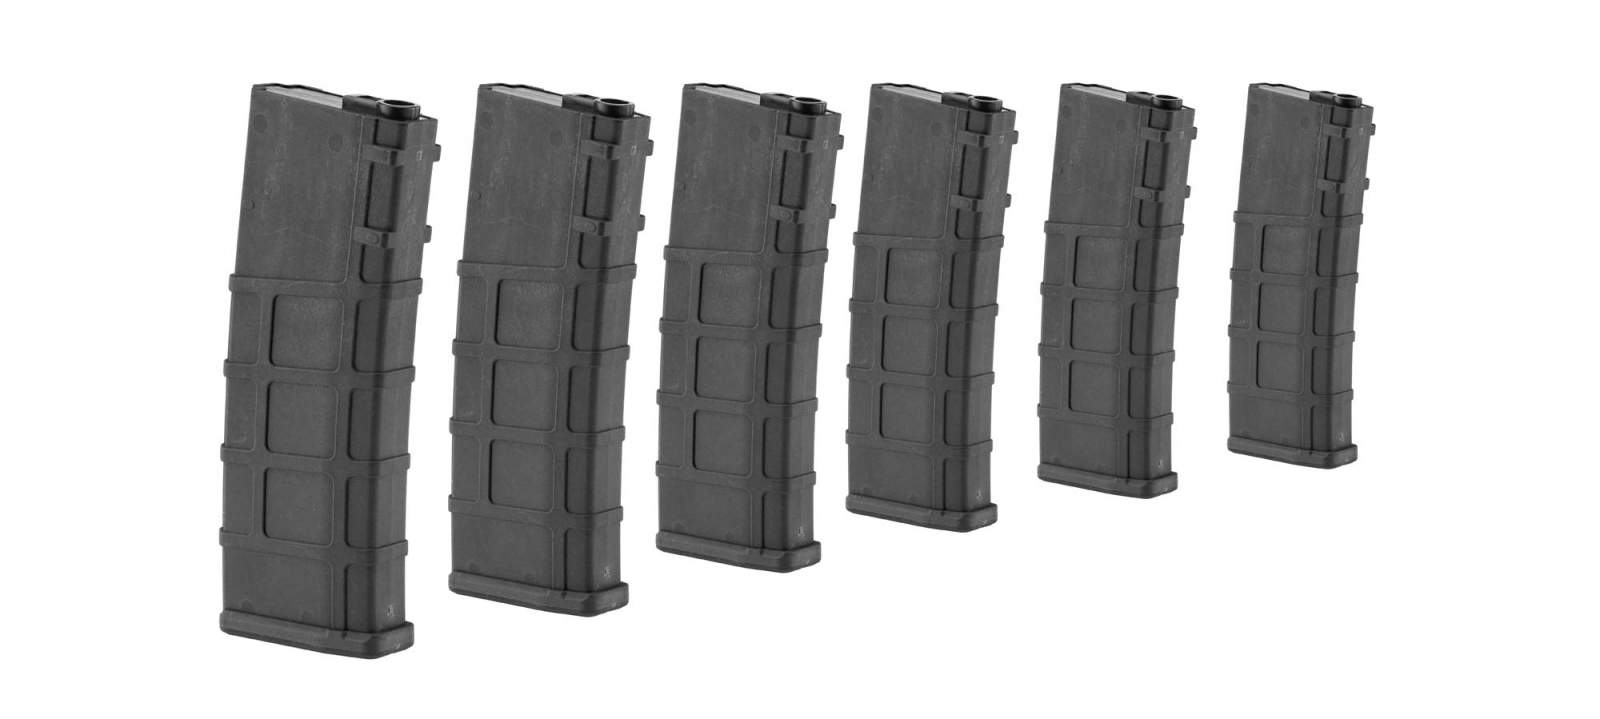 Photo Airsoft Magazine Real Cap 30 rds for M4 AEG Polymer Black - Pack of 6 pcs